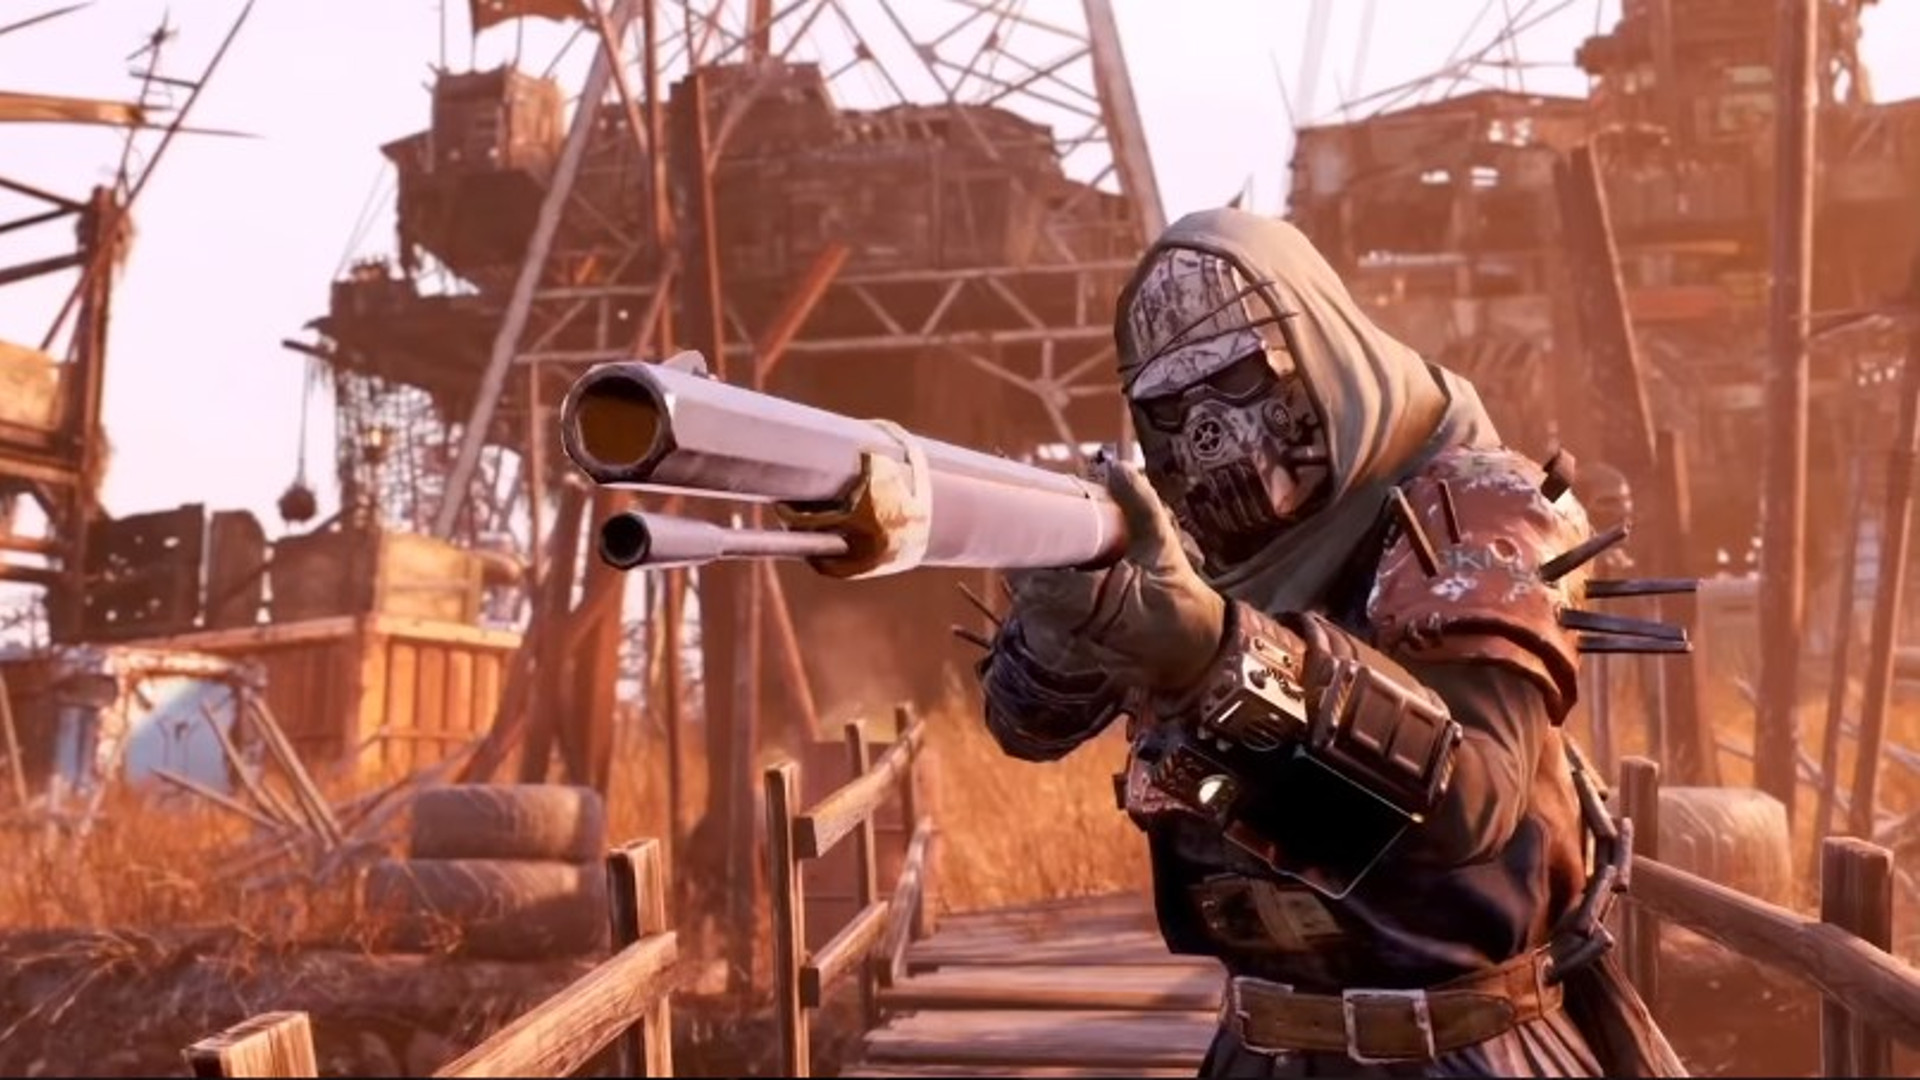 Fallout 76 is Free to Play This Weekend on Steam